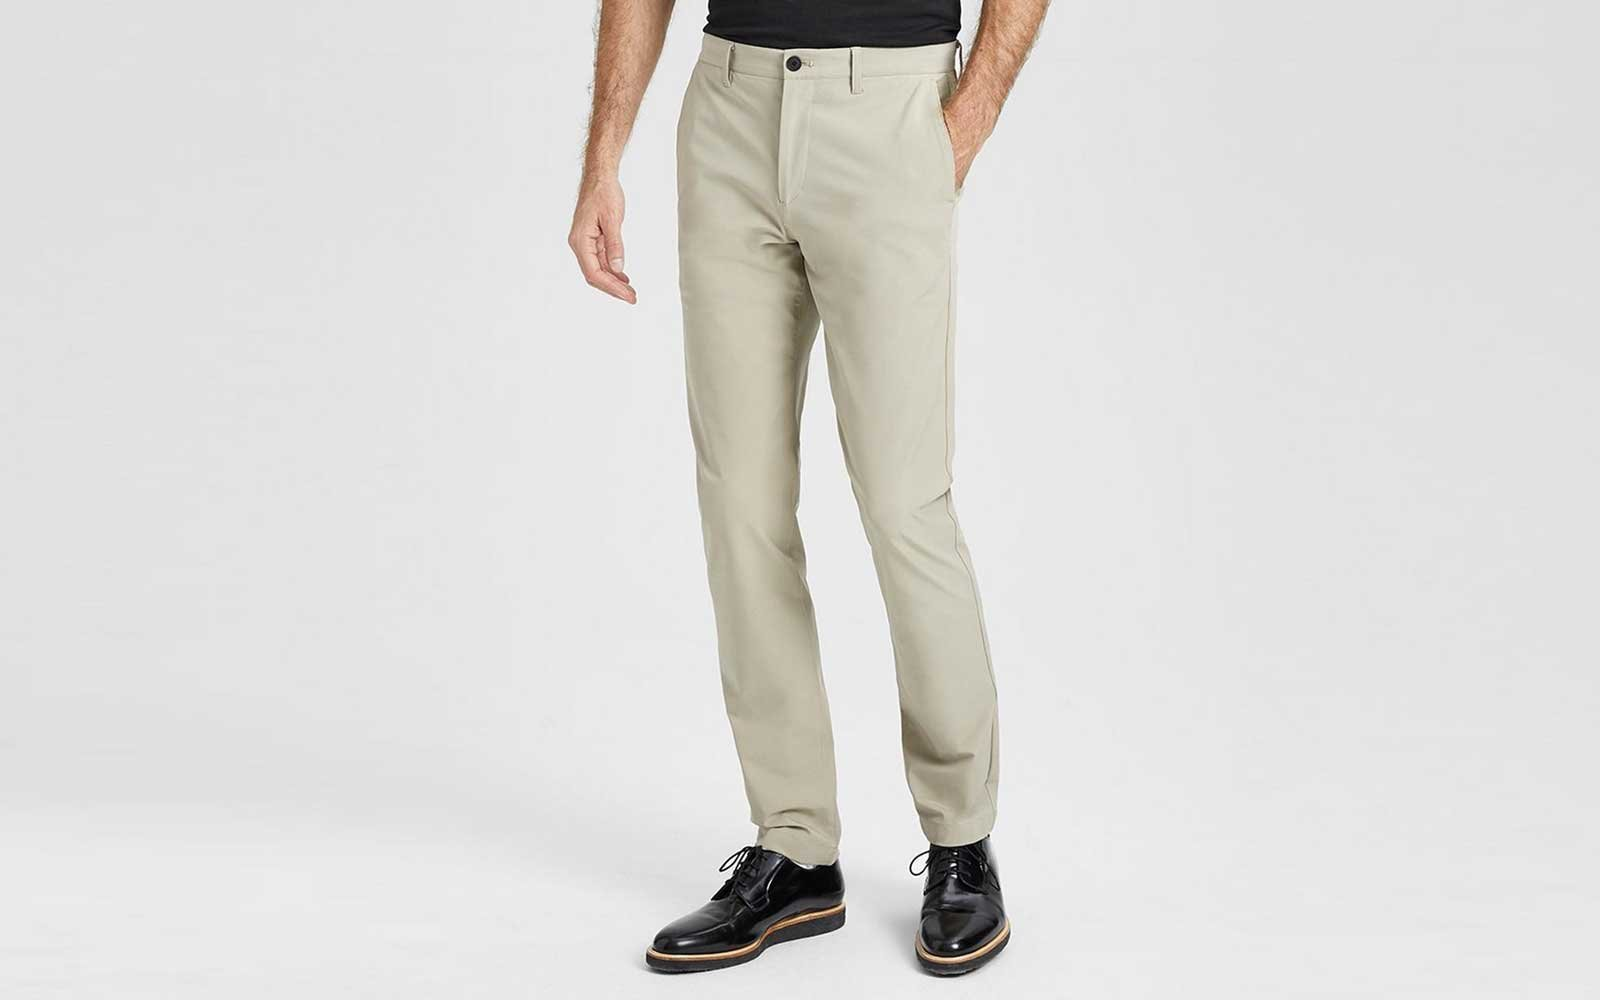 Best Dress Pant: Theory Active Nylon 'Zaine' Pant